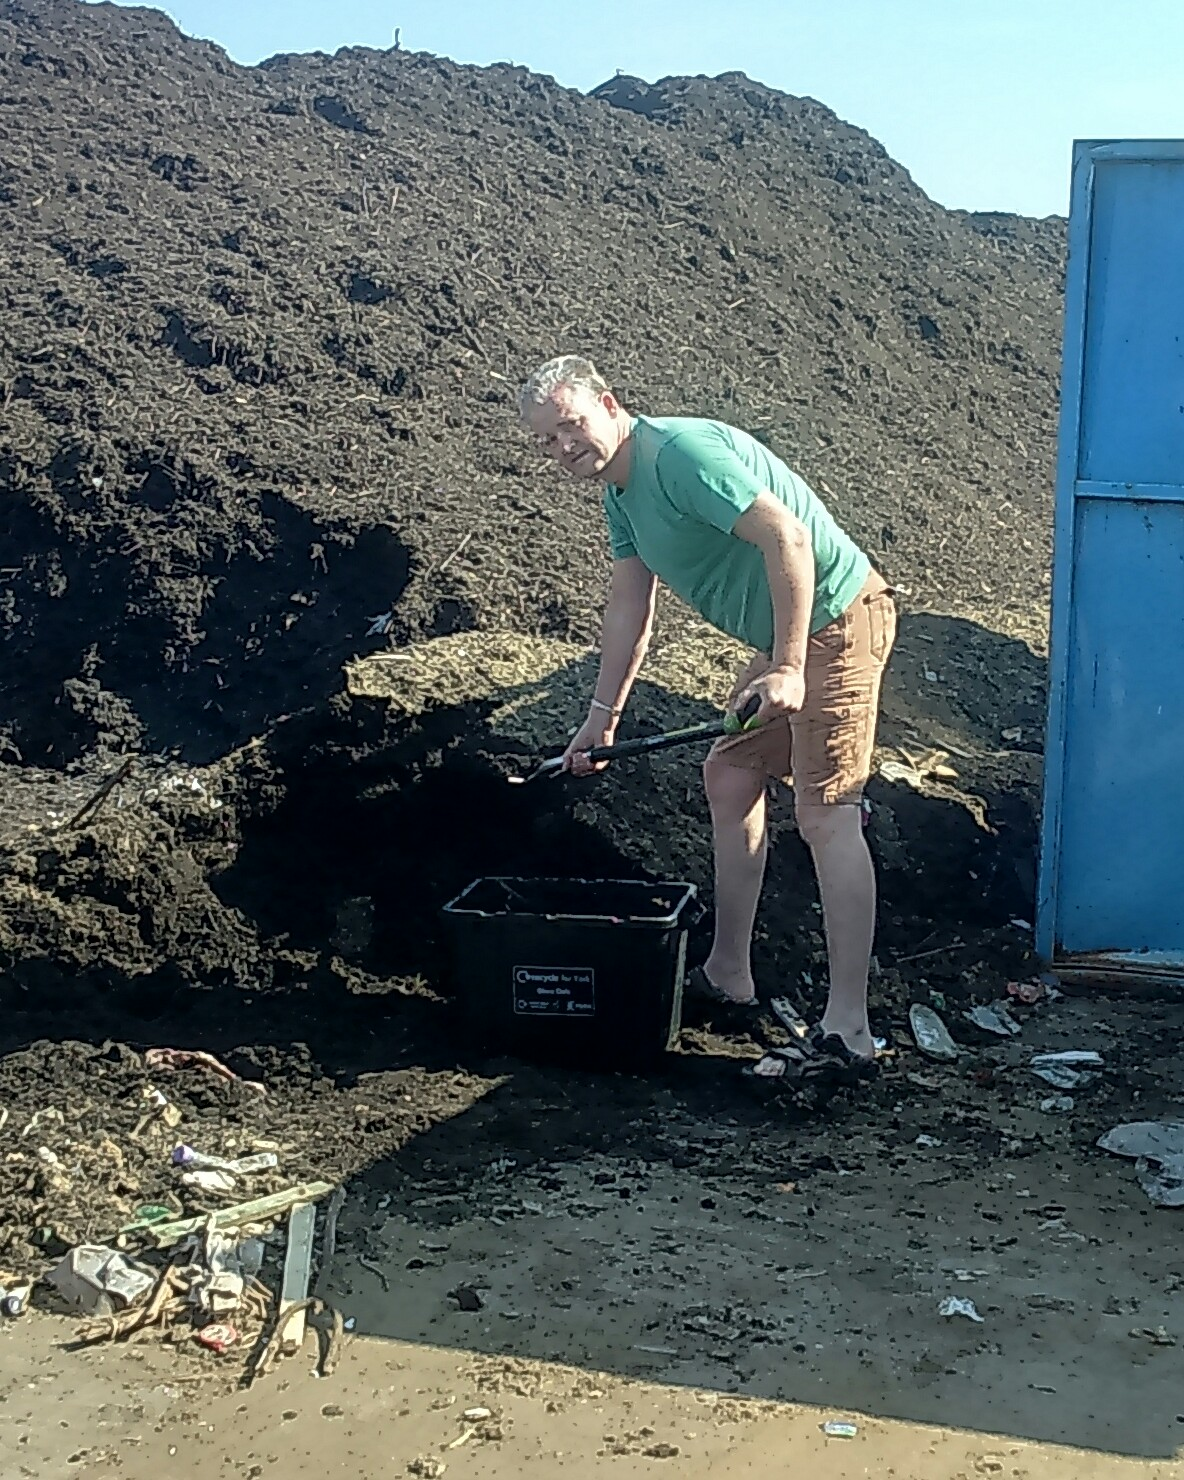 fill up your own containers with free compost